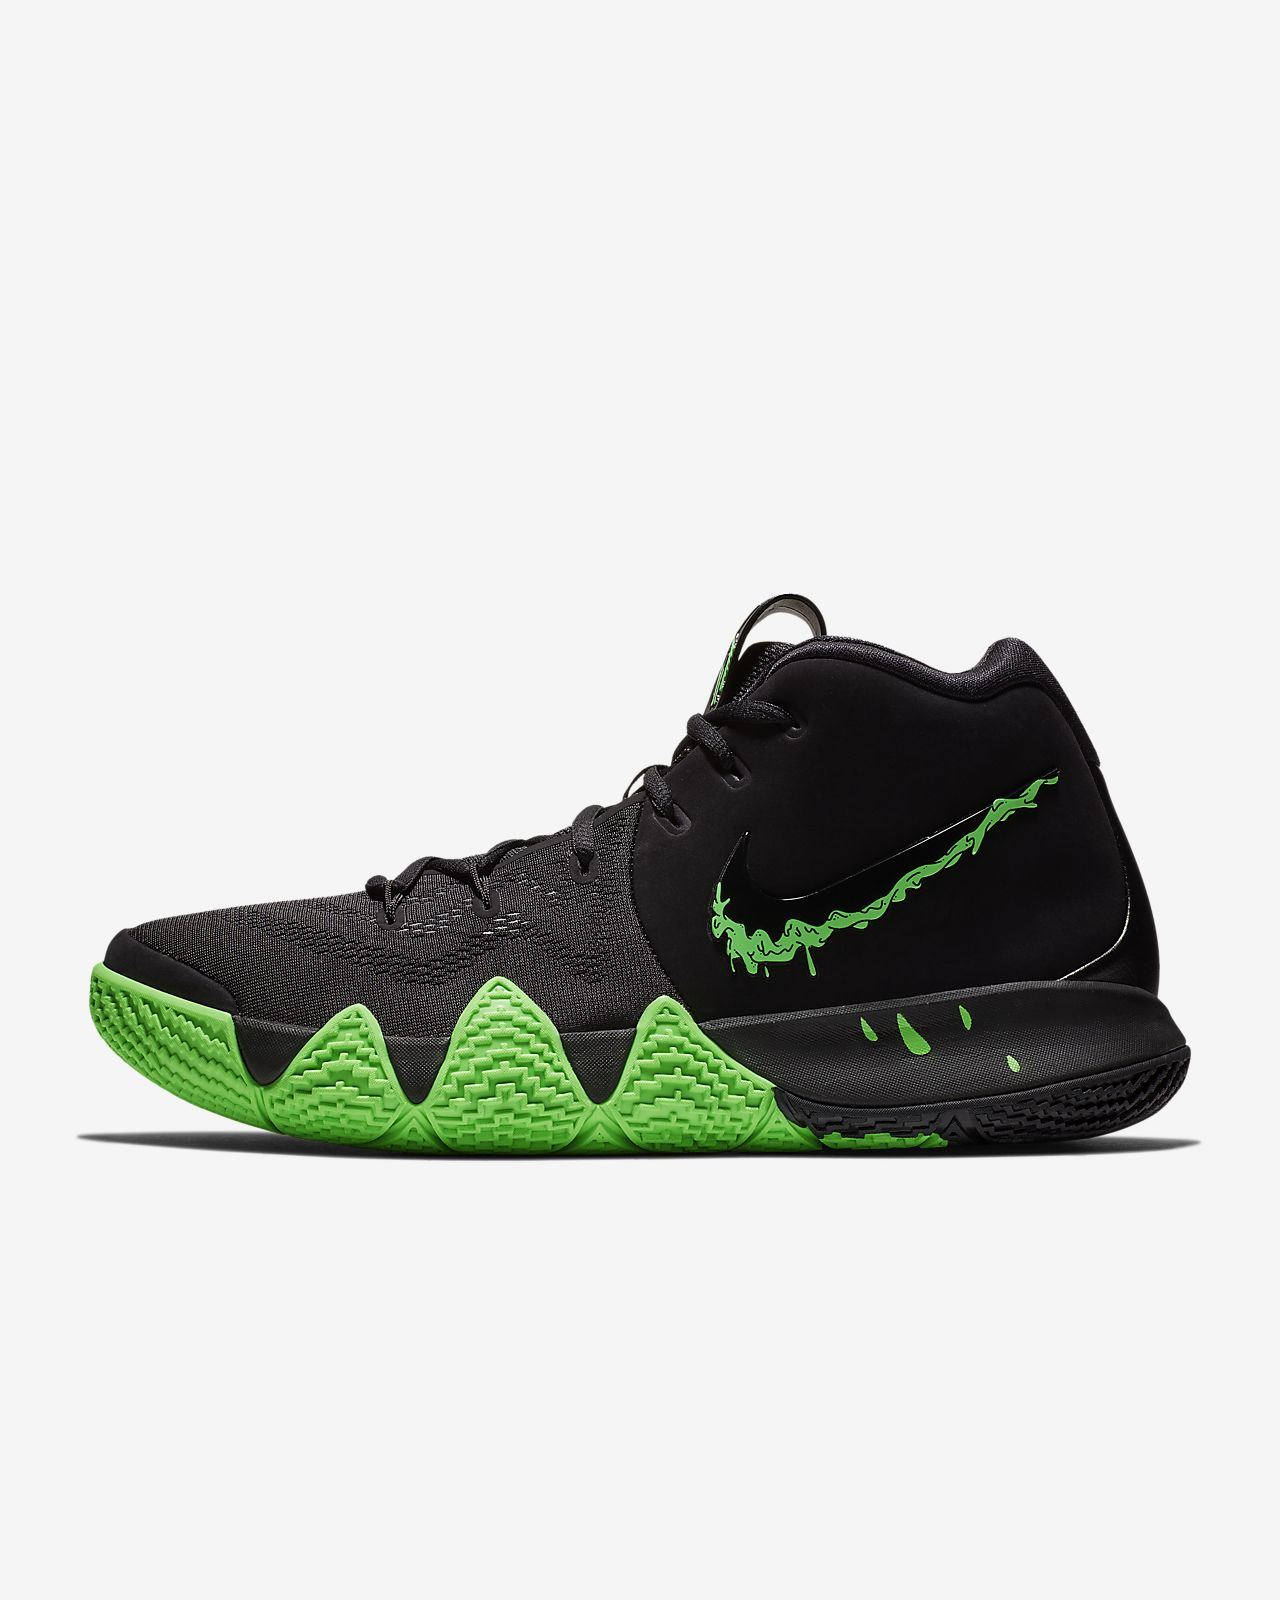 quality design a4c40 b5061 Kyrie 4 Basketball Shoe